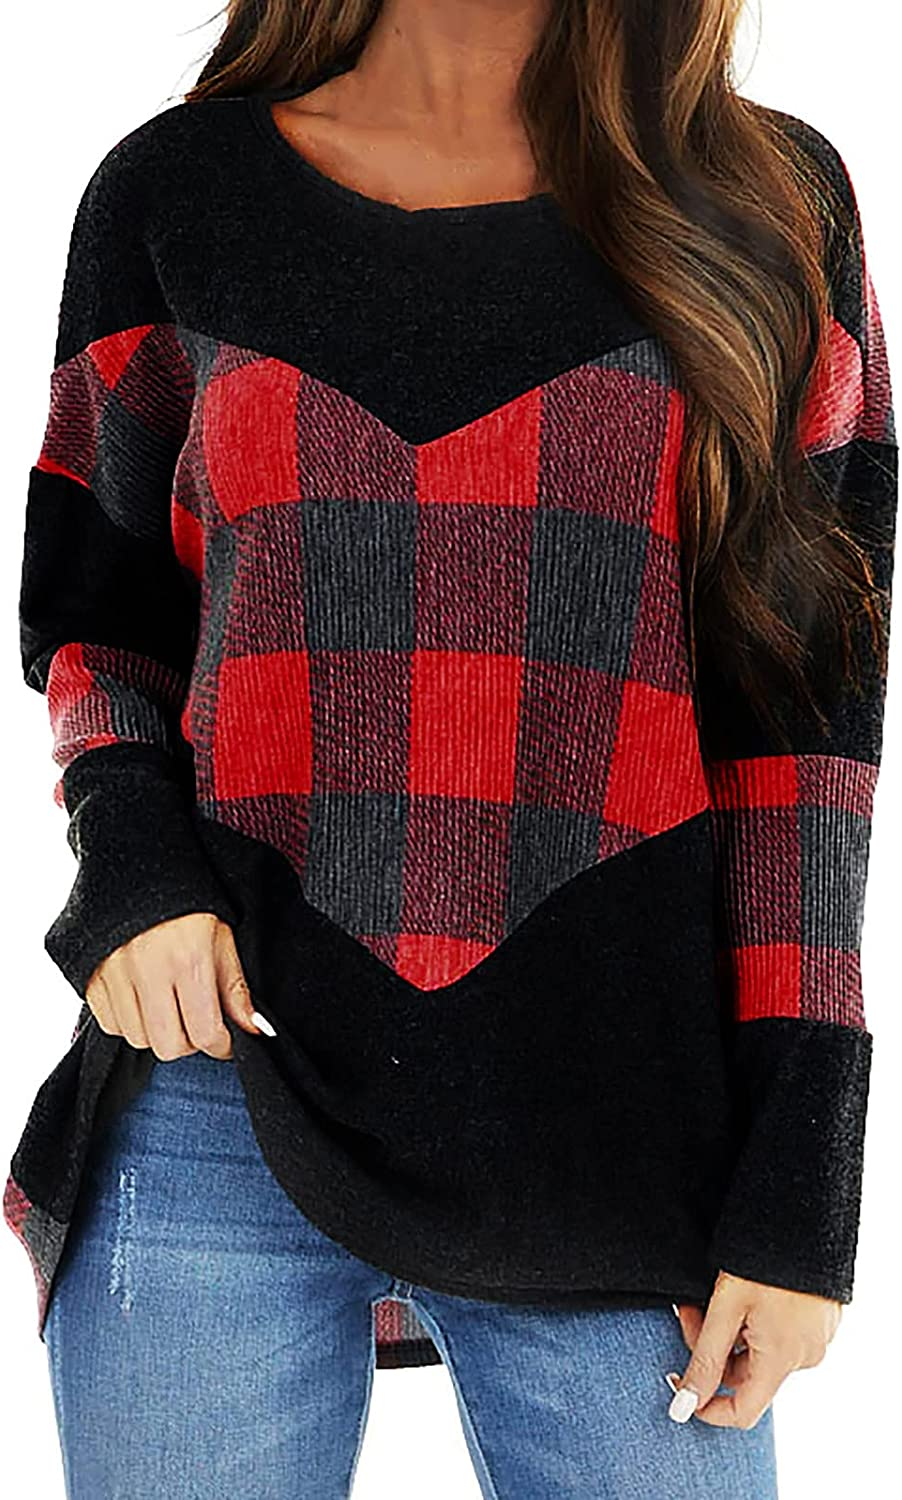 Women's Long Sleeve Blouses Print Round Neck Casual Loose Tops Fashion New Comfy Pullover Tunic Top